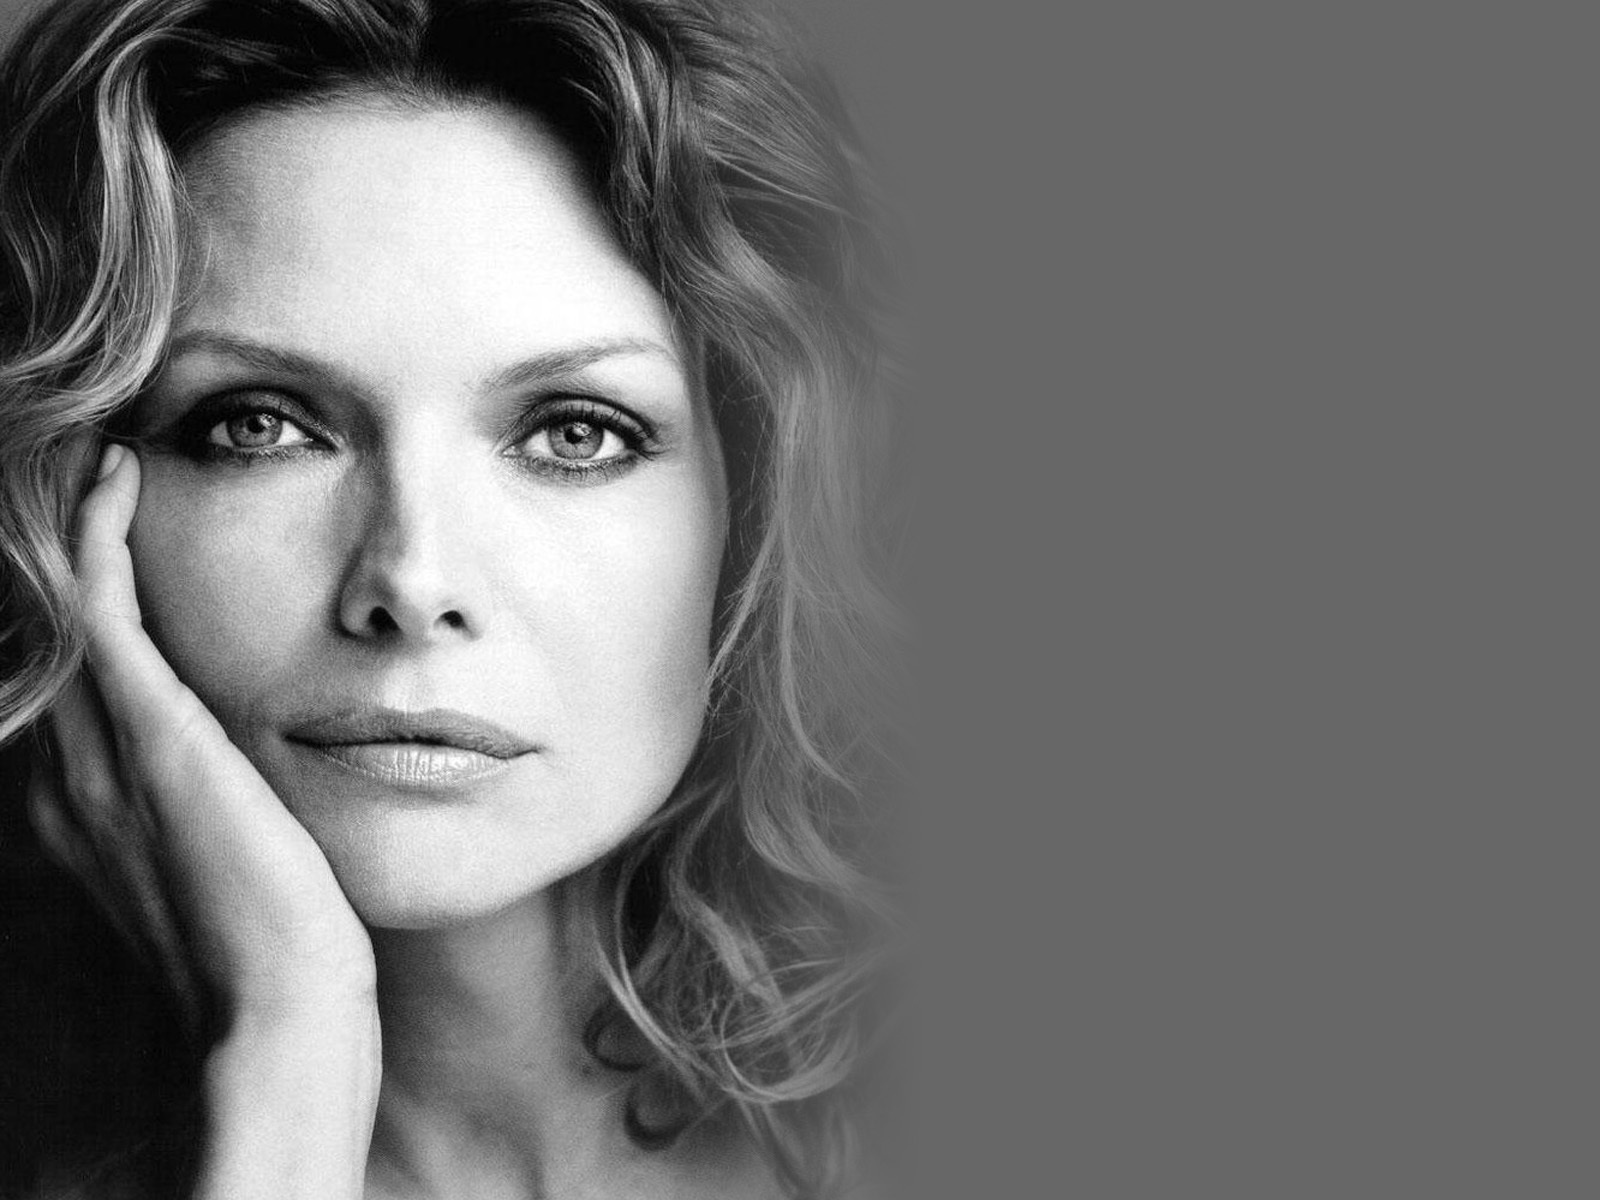 Michelle Pfeiffer Wallpapers Images Photos Pictures Backgrounds 1600x1200